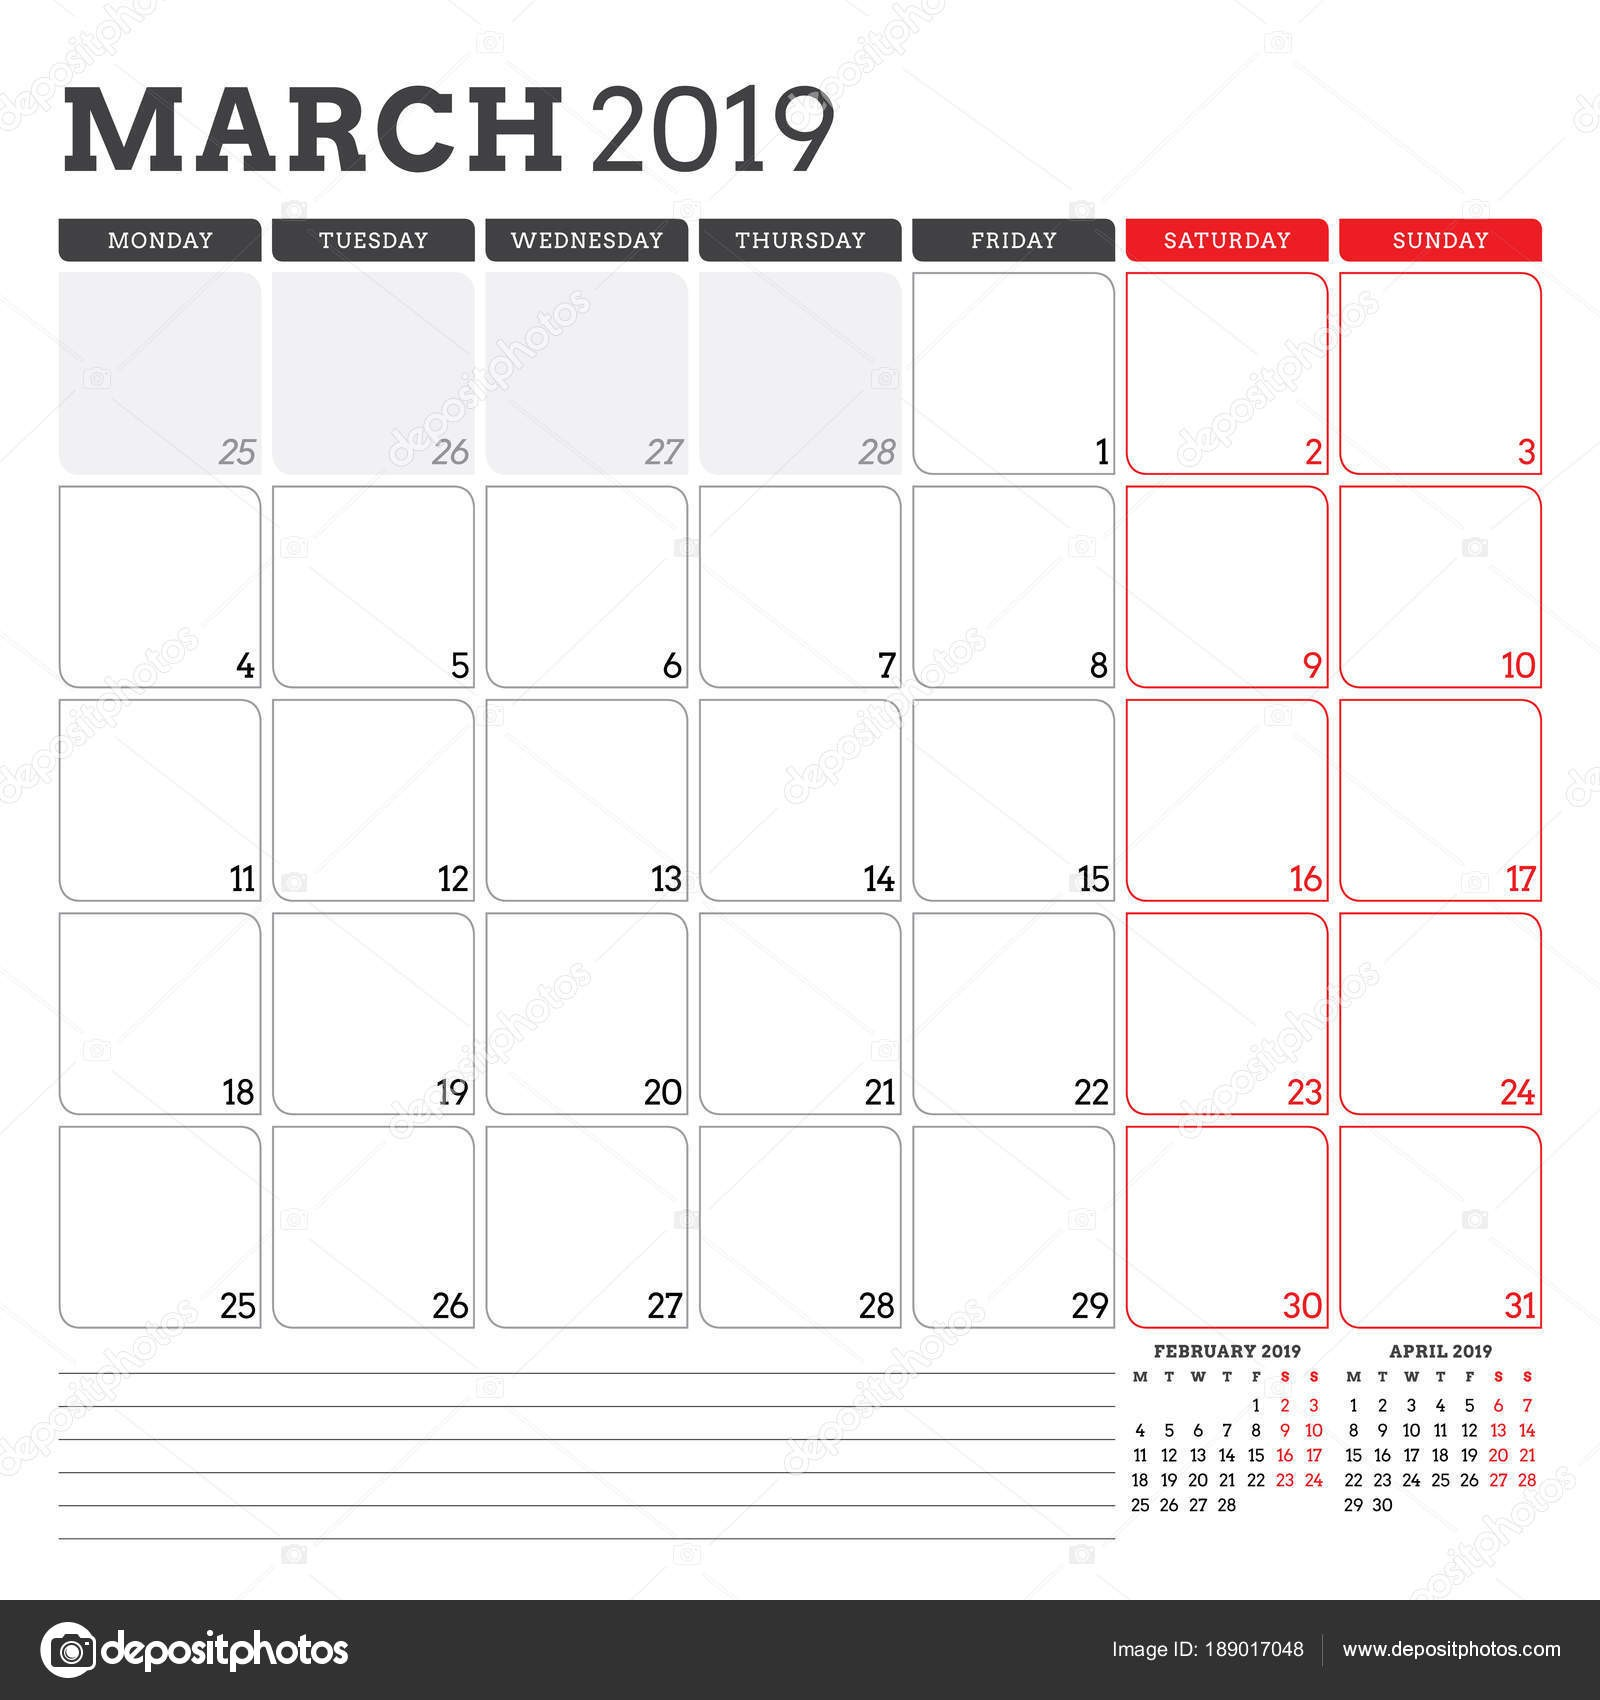 March Calendar 2019 Más Reciente Calendar Planner for March 2019 Week Starts On Monday Printable Of March Calendar 2019 Más Populares February March Calendar 2019 2018 Printable Calendar Store